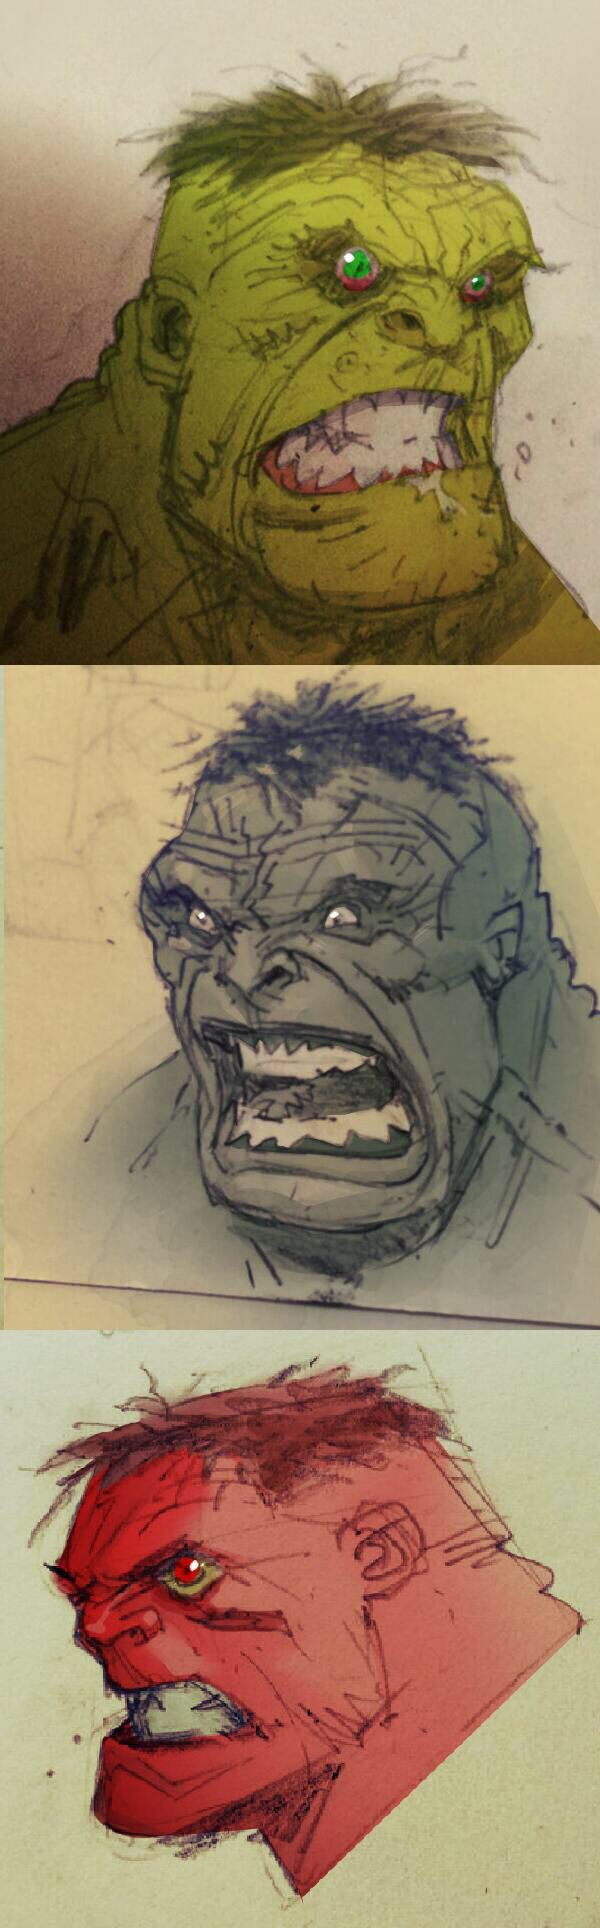 Hulk sketches by Greg Capullo